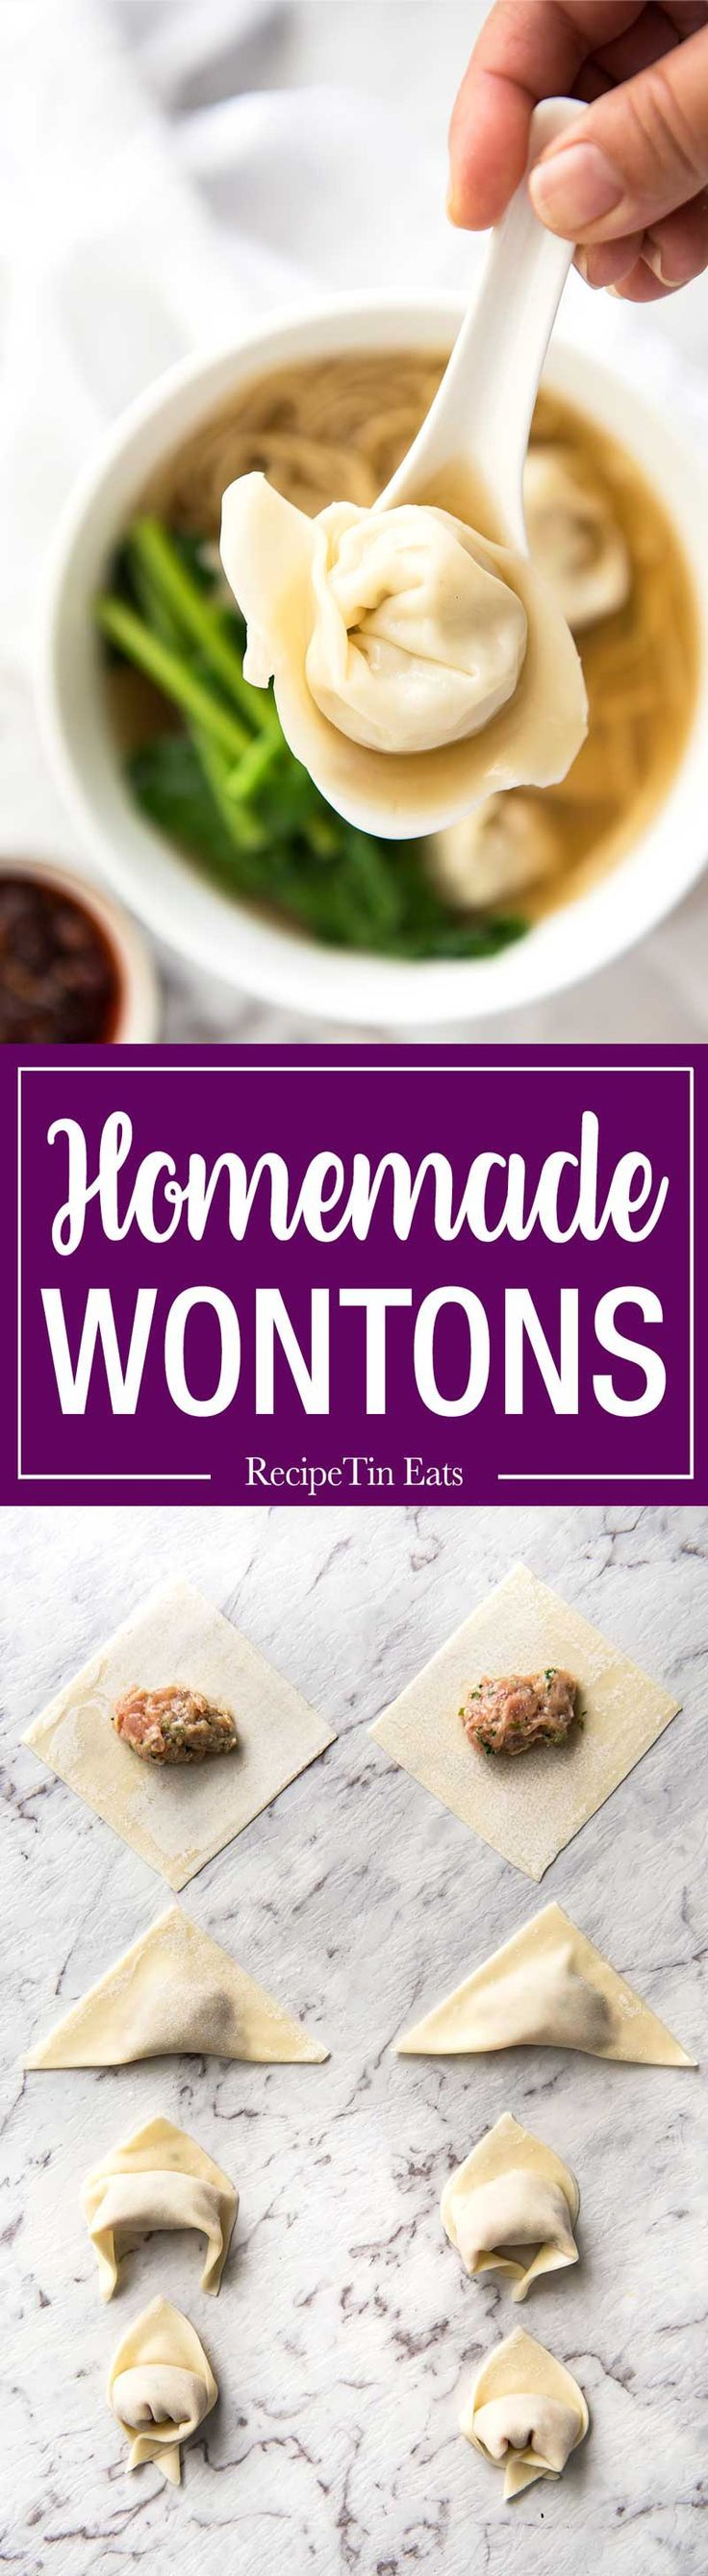 Homemade wontons filled with a juicy pork and shrimp / prawn filling! With my step by step photos and 2 little tips, these are really easy and fast to make loads of them.